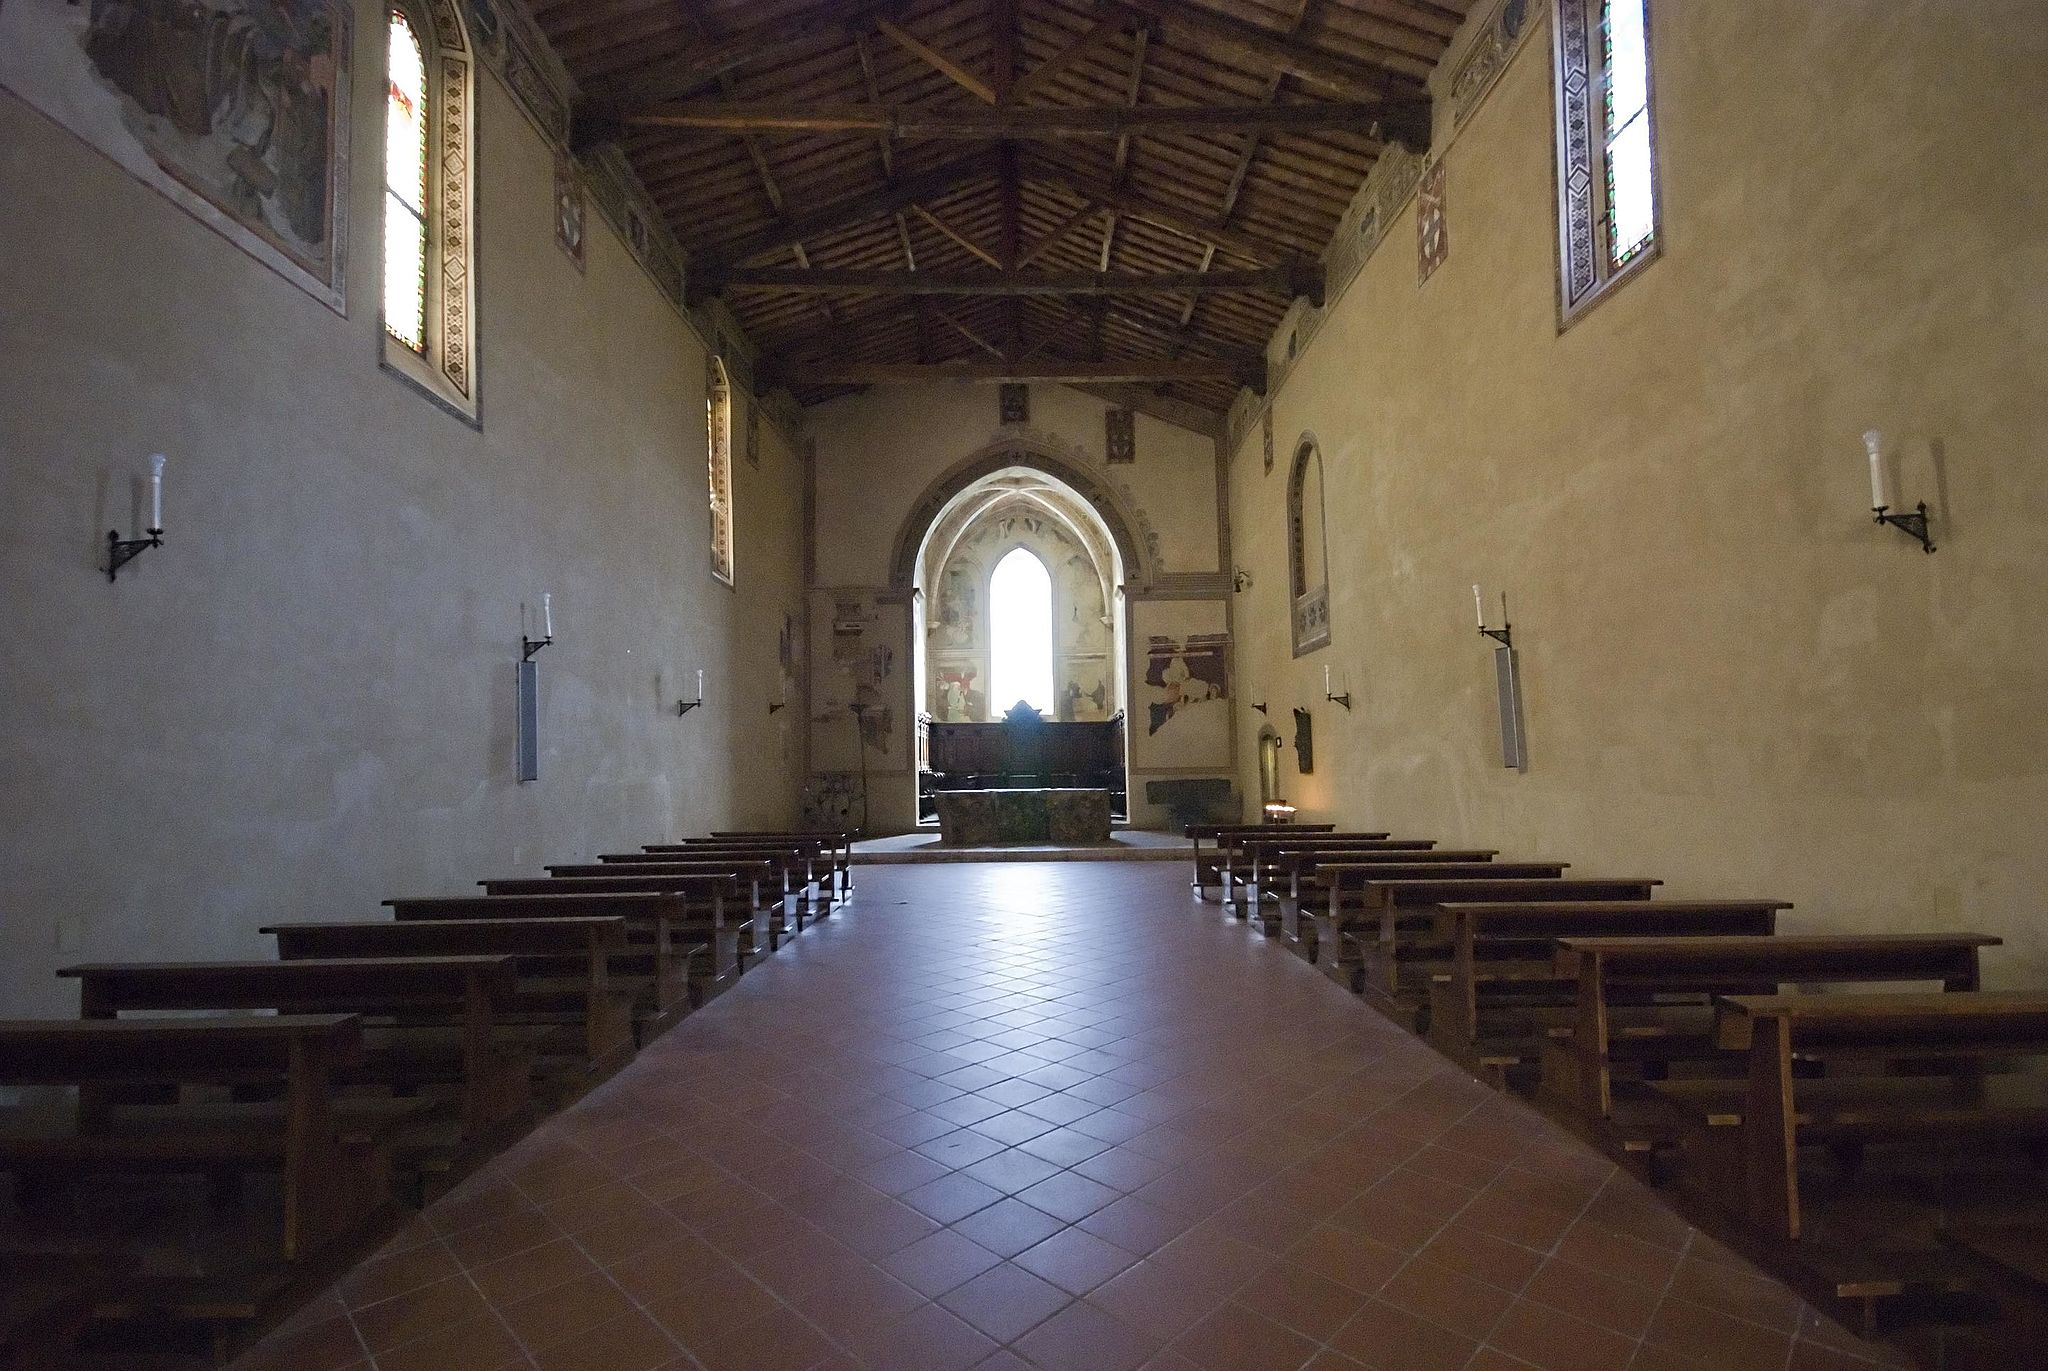 Interior of the chiesa di San Francesco, Pienza